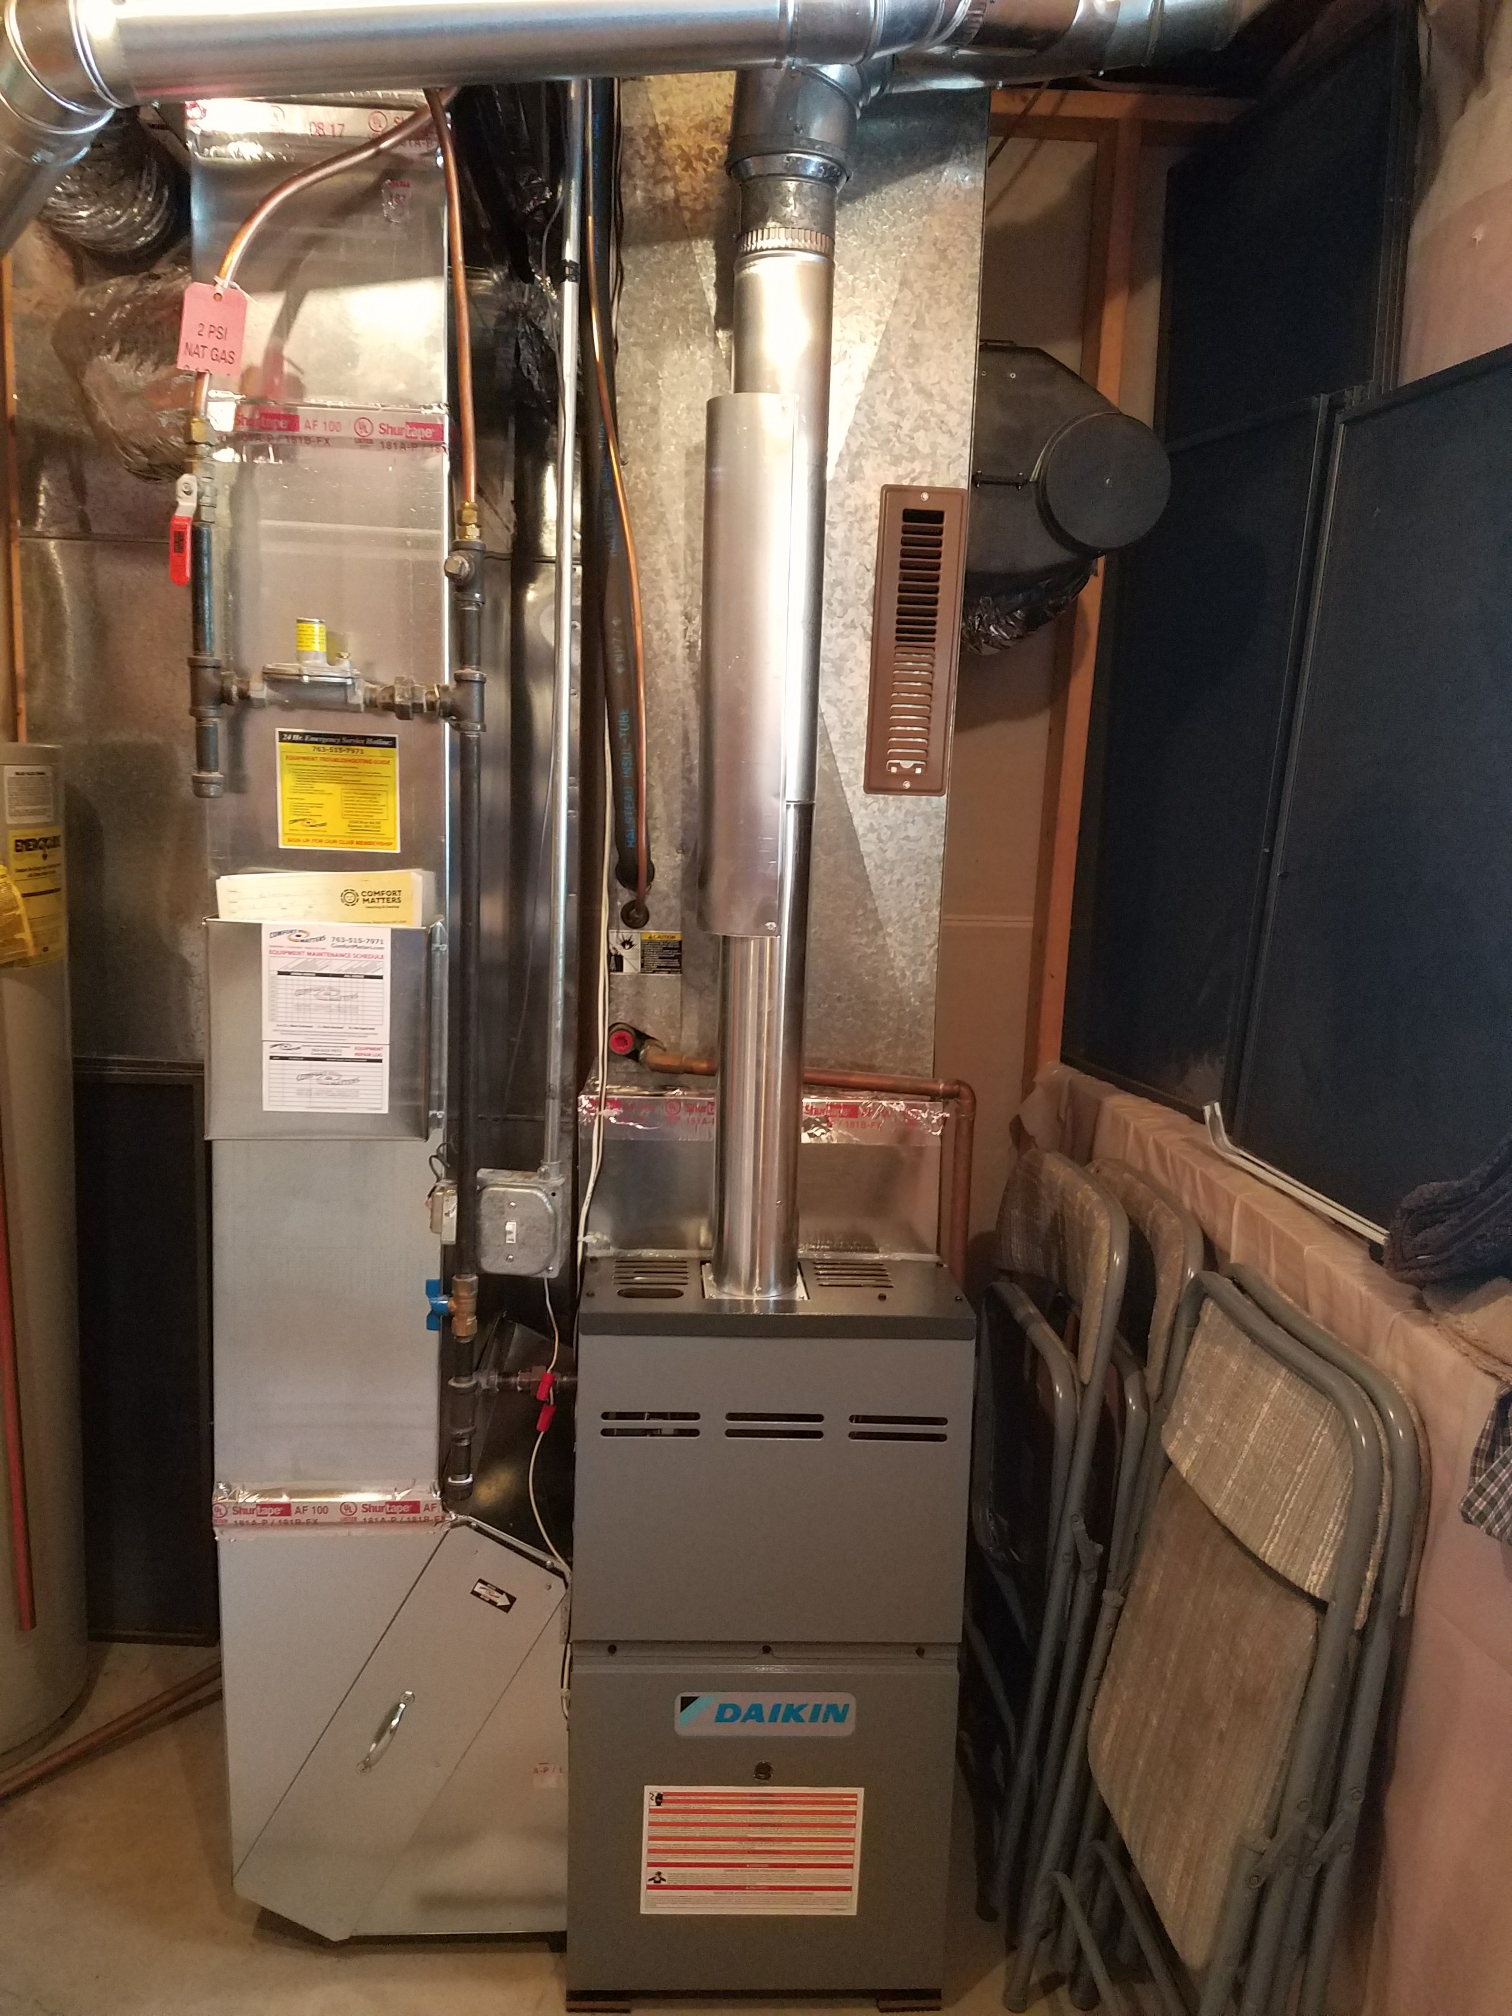 Elk River, MN - Install Daikin furnace with Honeywell T4 thermostat